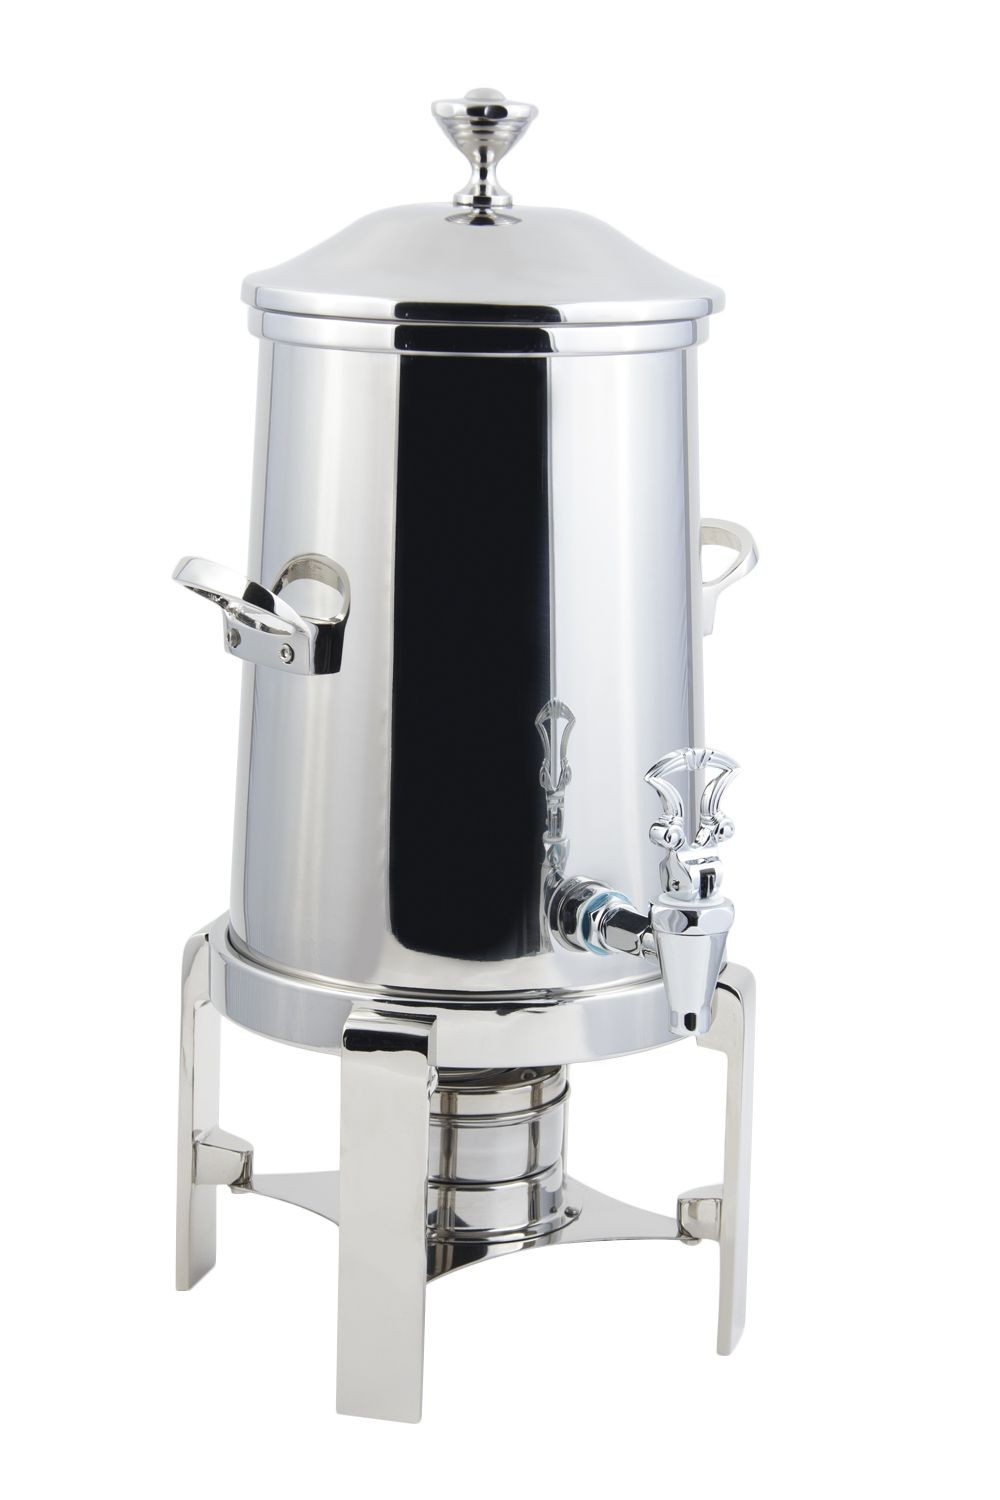 Bon Chef 42101C Contemporary Non-Insulated Coffee Urn with Chrome Trim, 1 1/2 Gallon